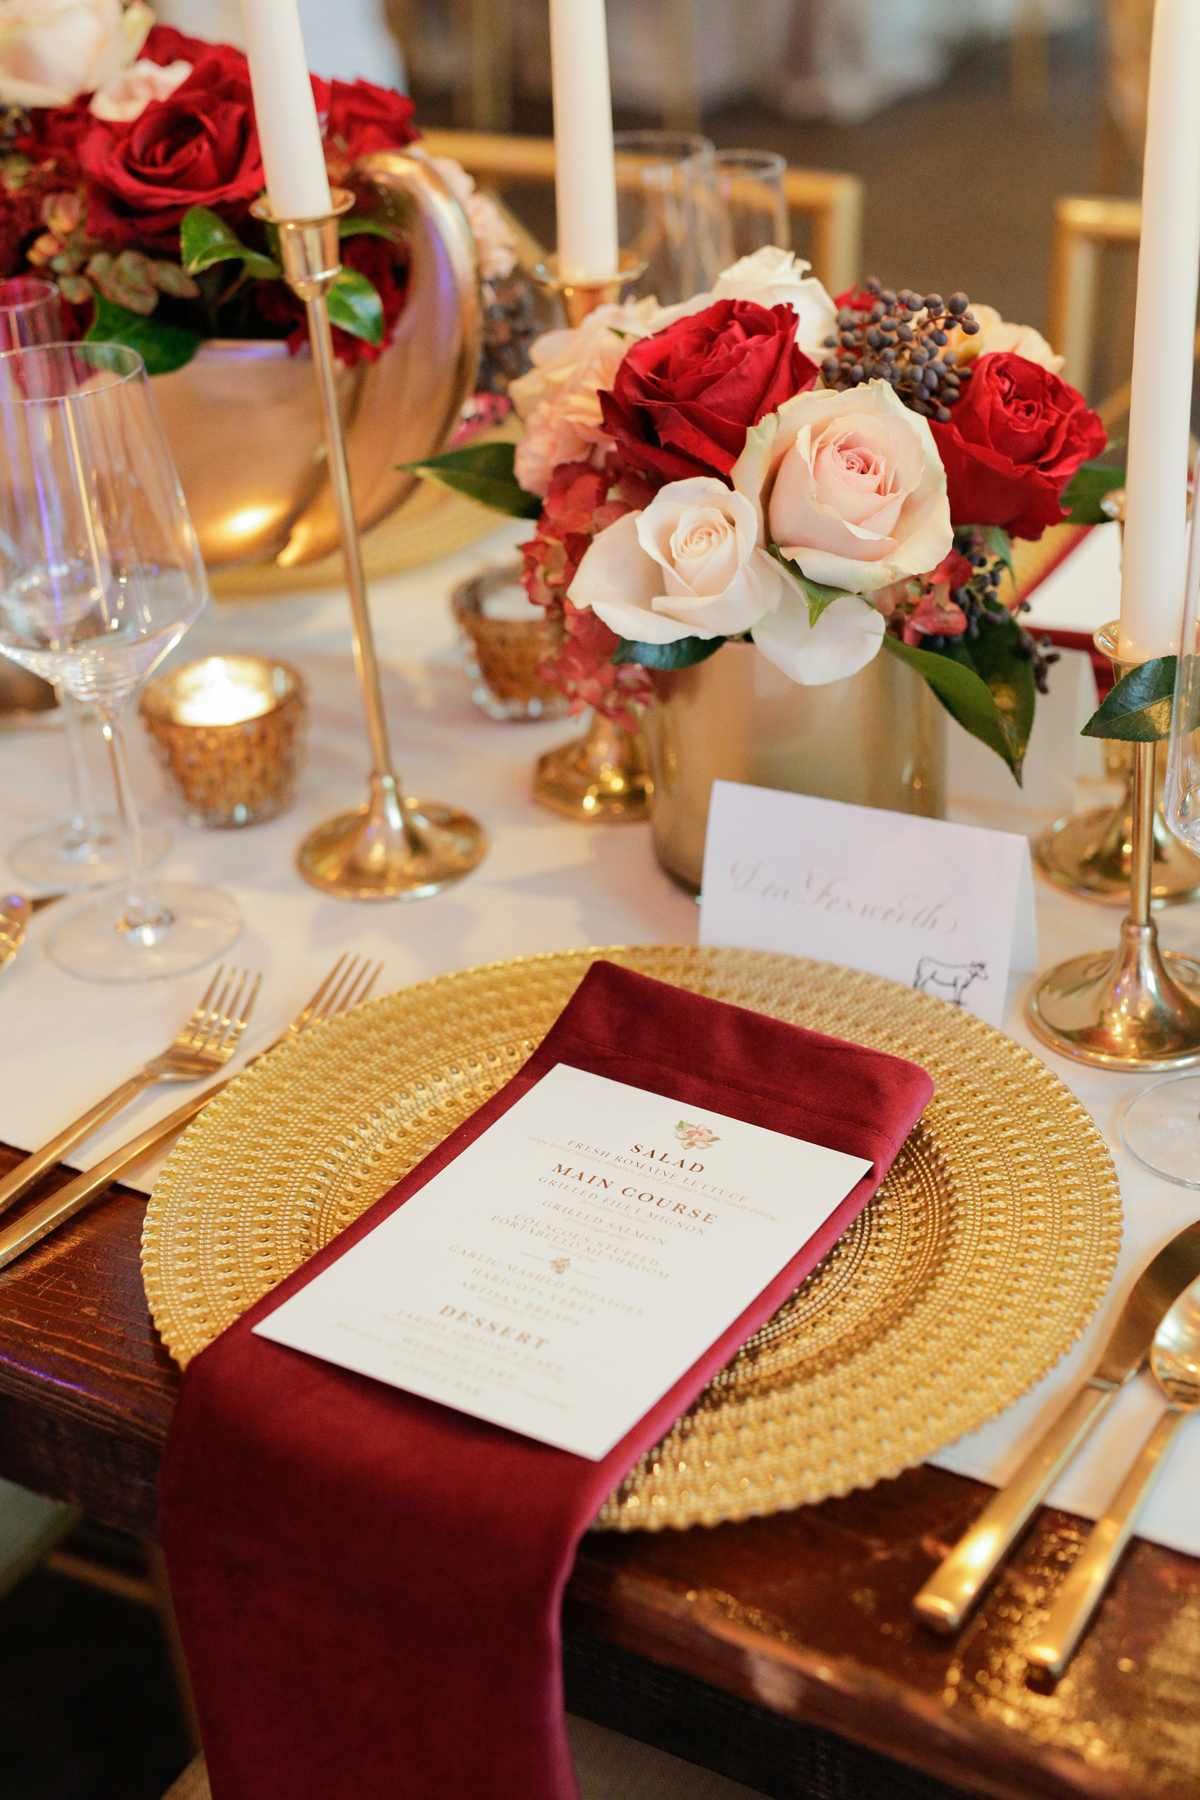 elizabeth seth wedding place setting with gold plates and red napkins